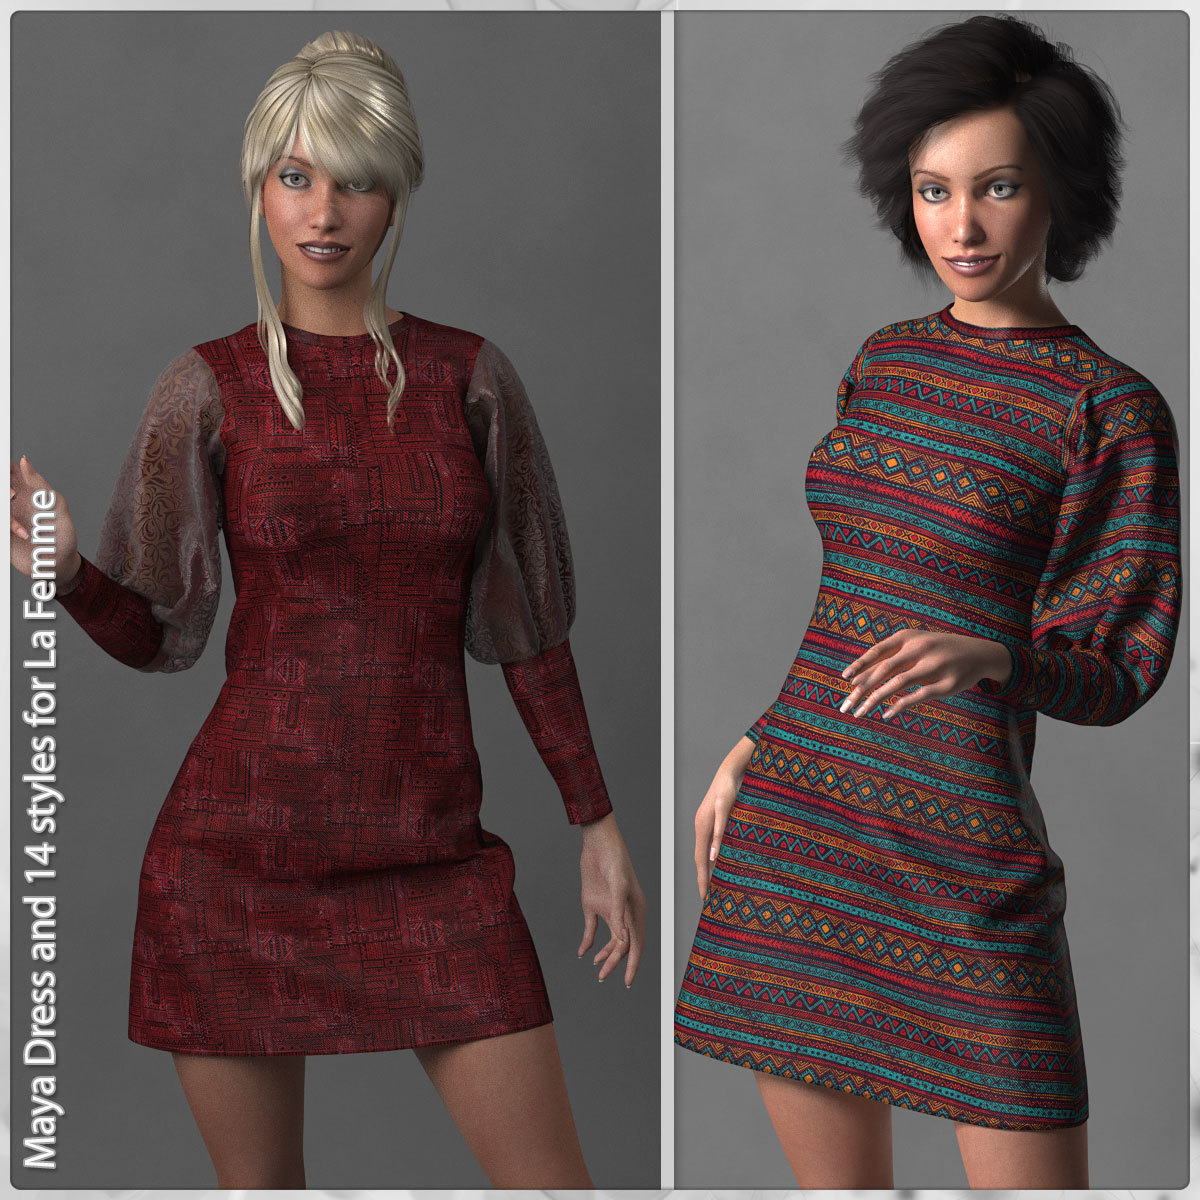 Maya Dress and 14 Styles for La Femme